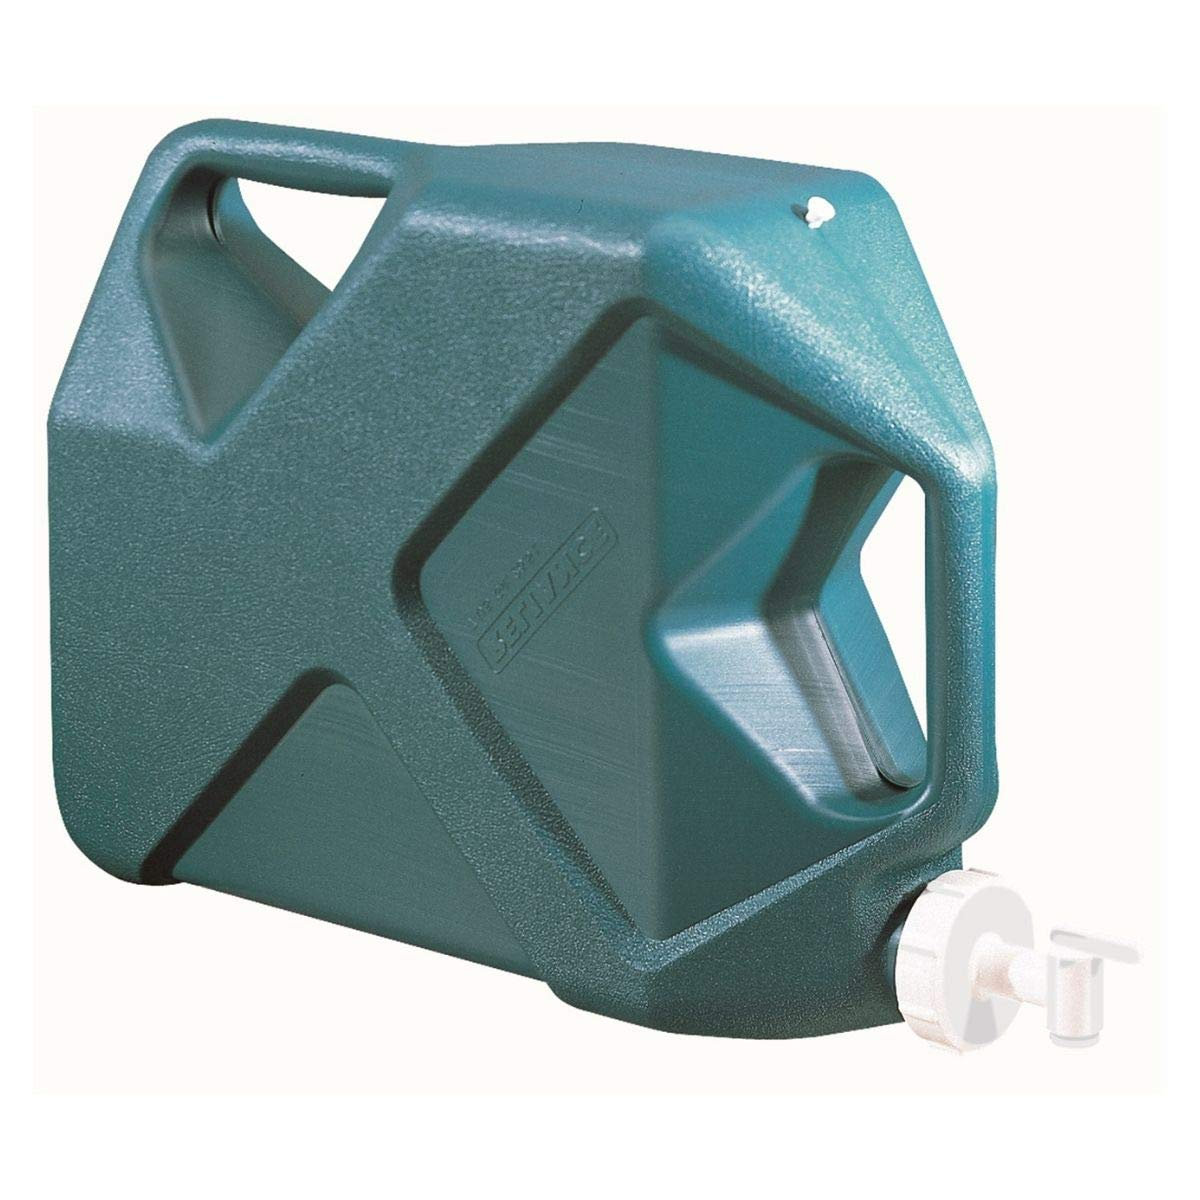 Reliance Jumbo-Tainer Water Container 7 Gallon (Green/Set of 2) by Reliance Products